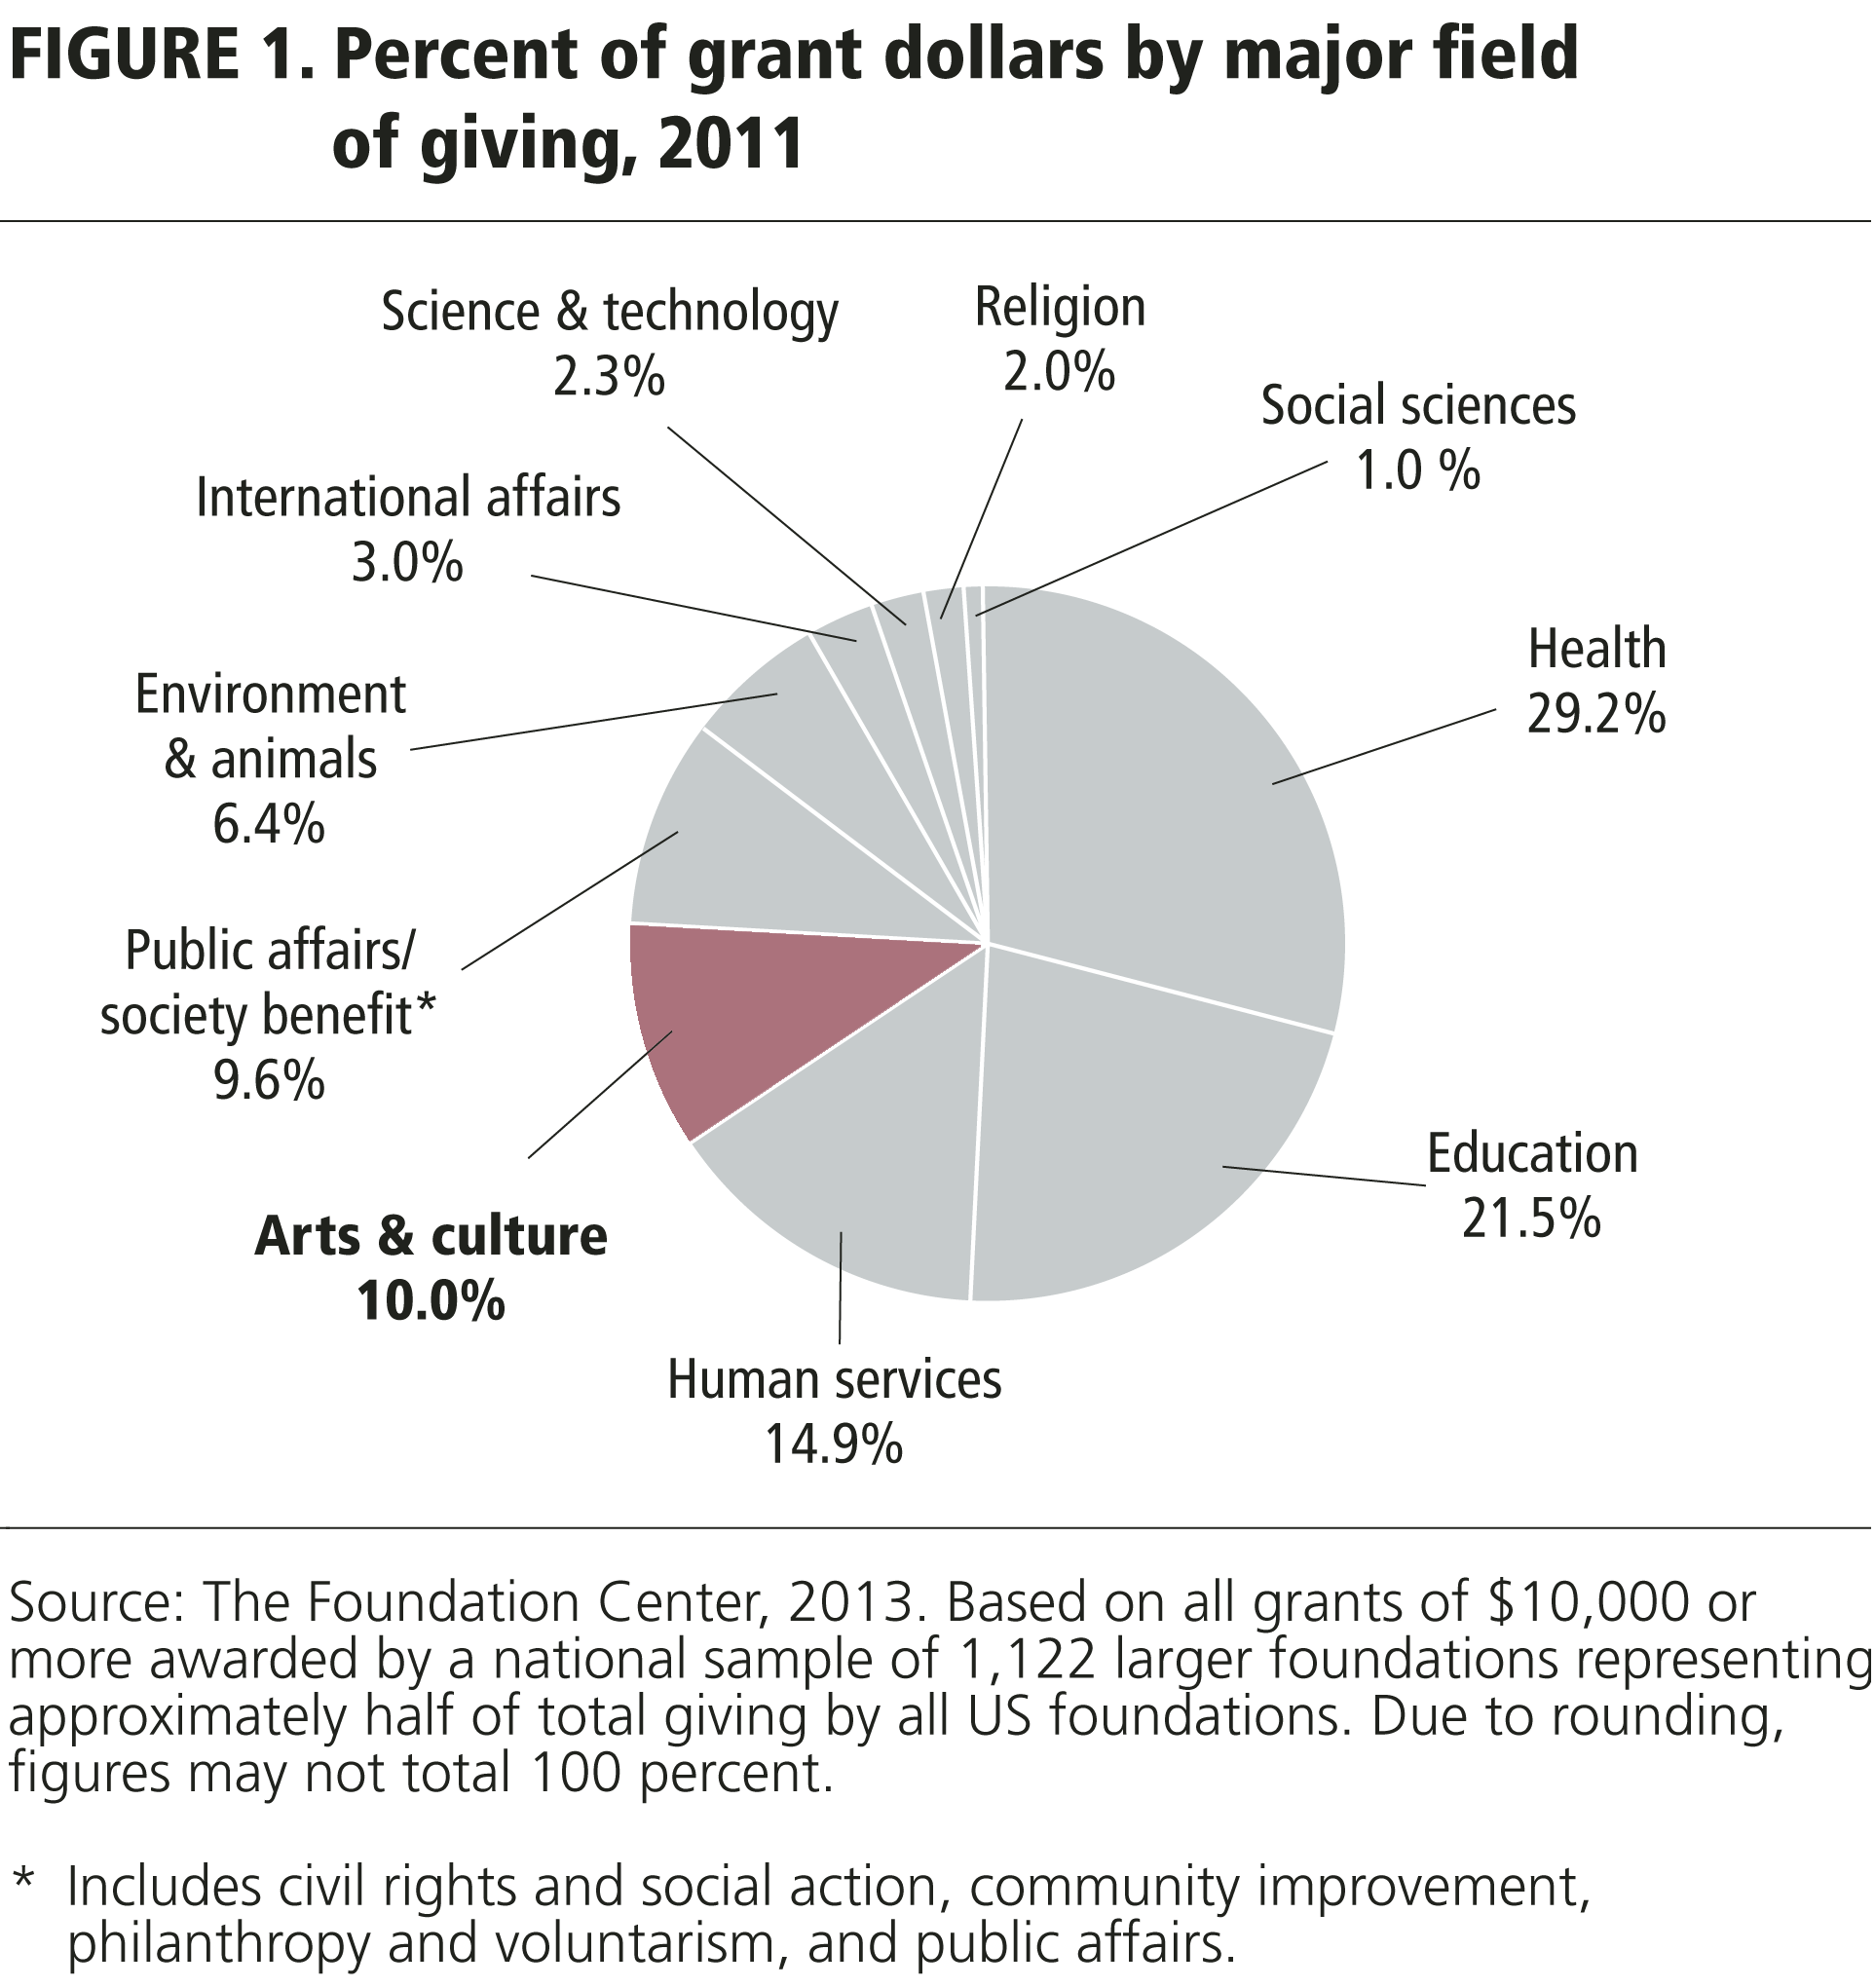 Figure 1. Percent of grant dollars by major field of giving, 2011